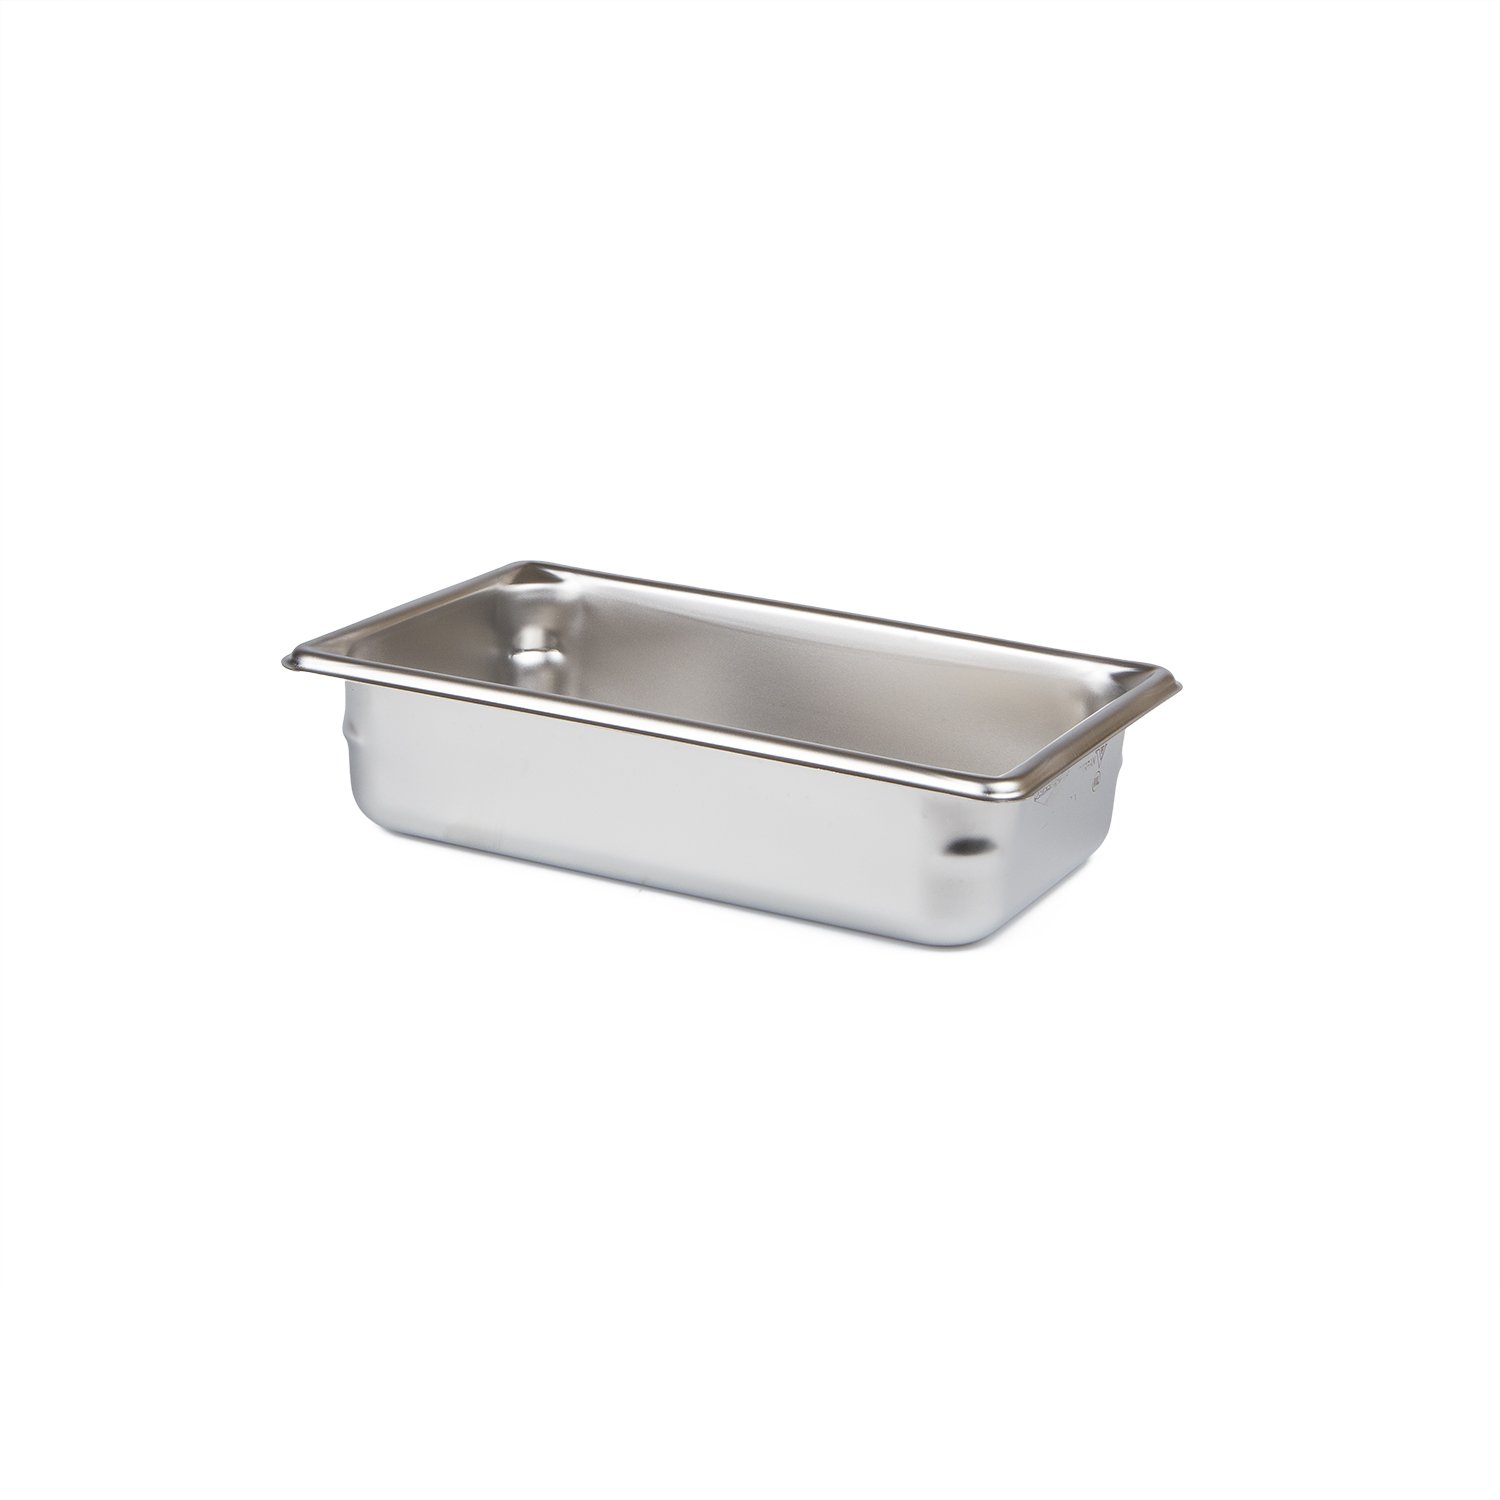 Medegen Medical Products 30422 Tray, Standard Gauge, 1/4'', 6-3/8'' x 10-3/8'' x 2-1/2'', Stainless Steel